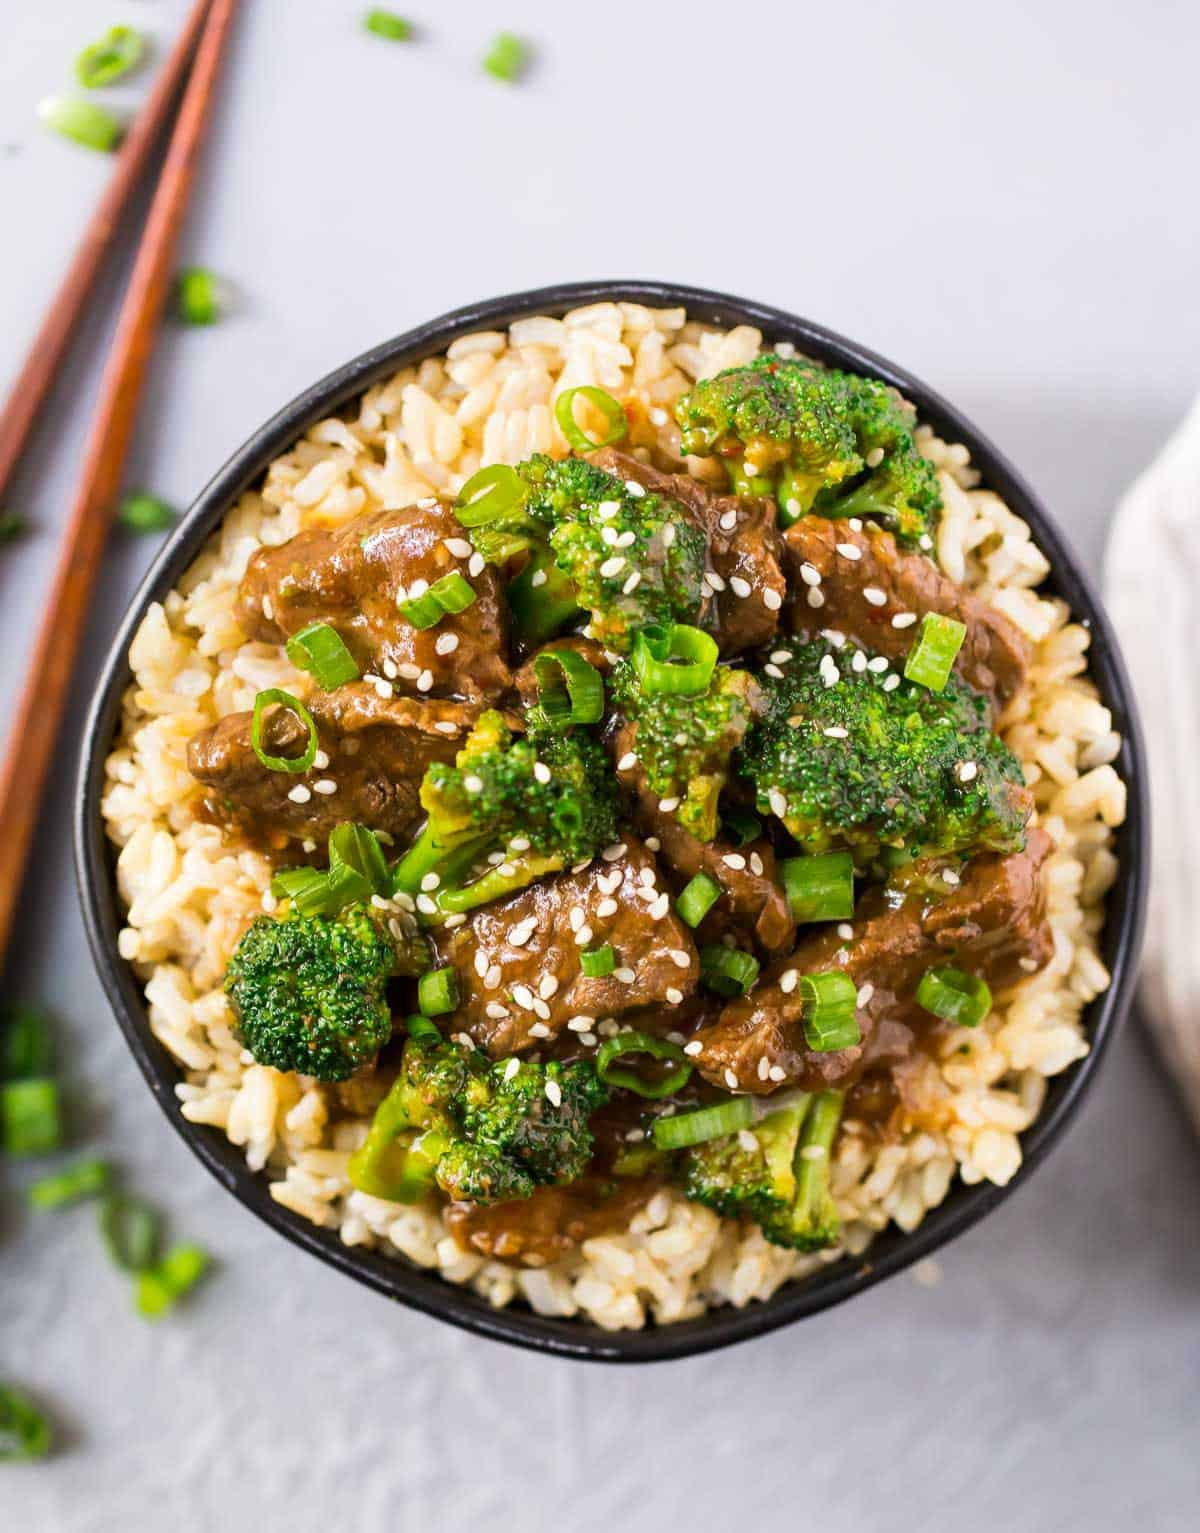 Healthy Instant Pot Beef and Broccoli. Tender beef in the most flavorful Mongolian sauce. EASY and delicious! One of the best pressure cooking recipes. Serve with rice or try cauliflower rice to make it low carb!